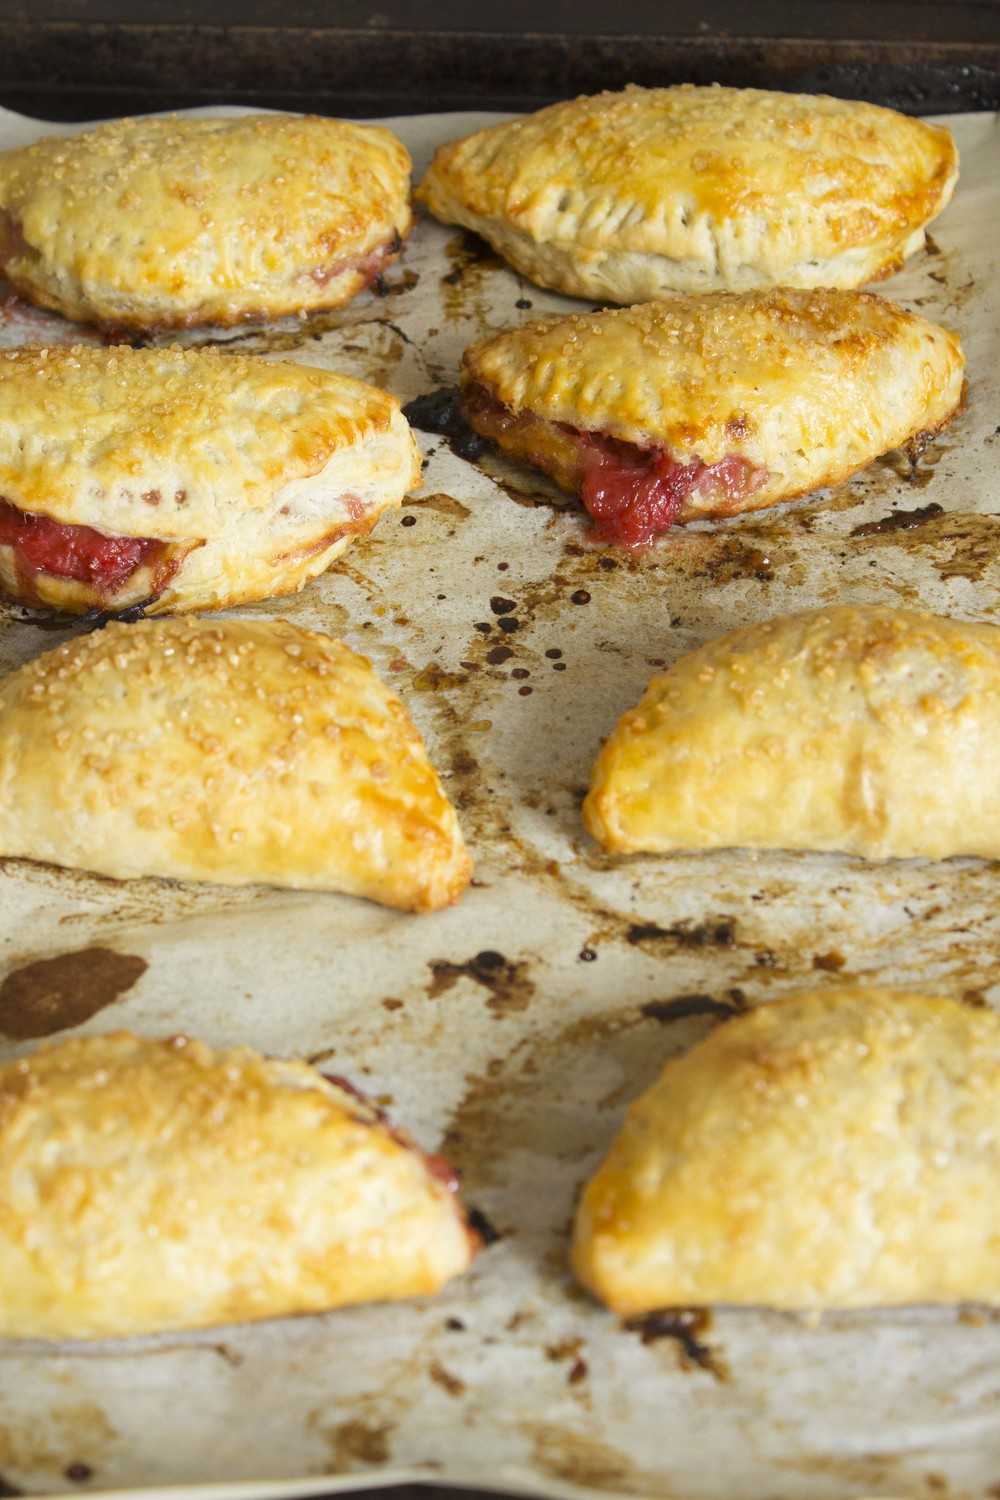 Strawberry Rhubarb Hand Pies  | Image:  Laura Messersmith